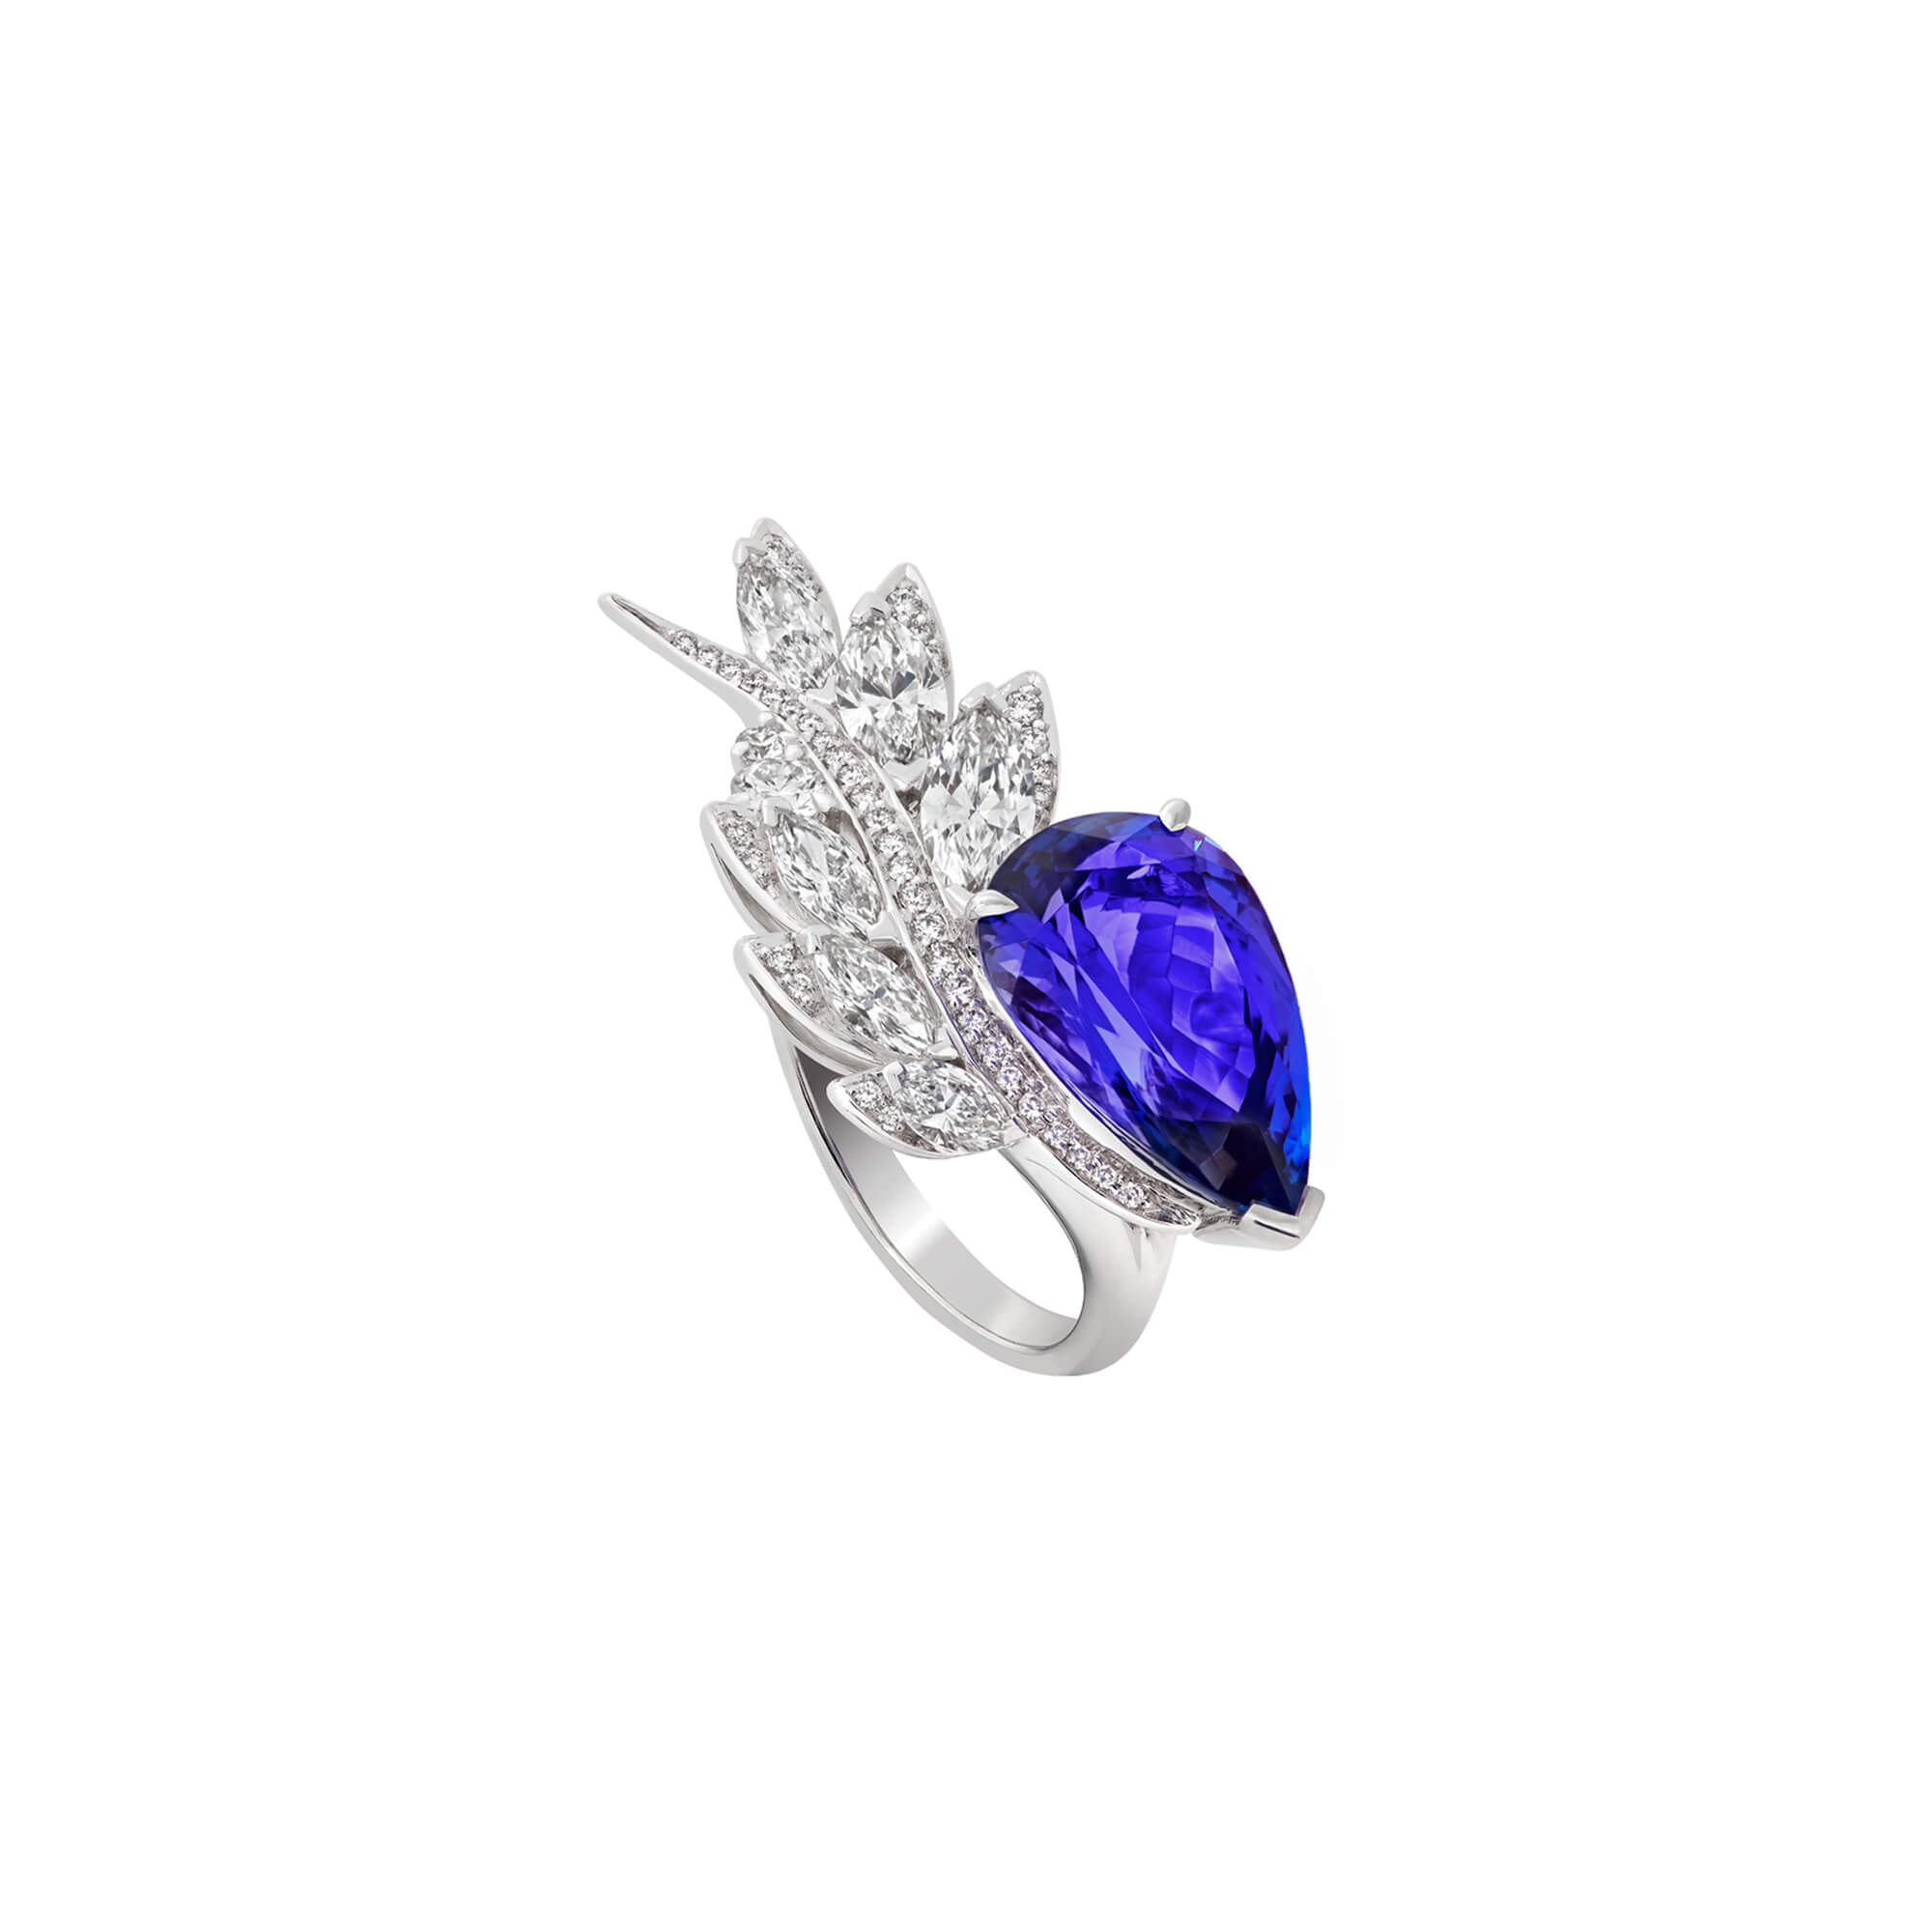 Magnipheasant Couture Ring | Stephen Webster